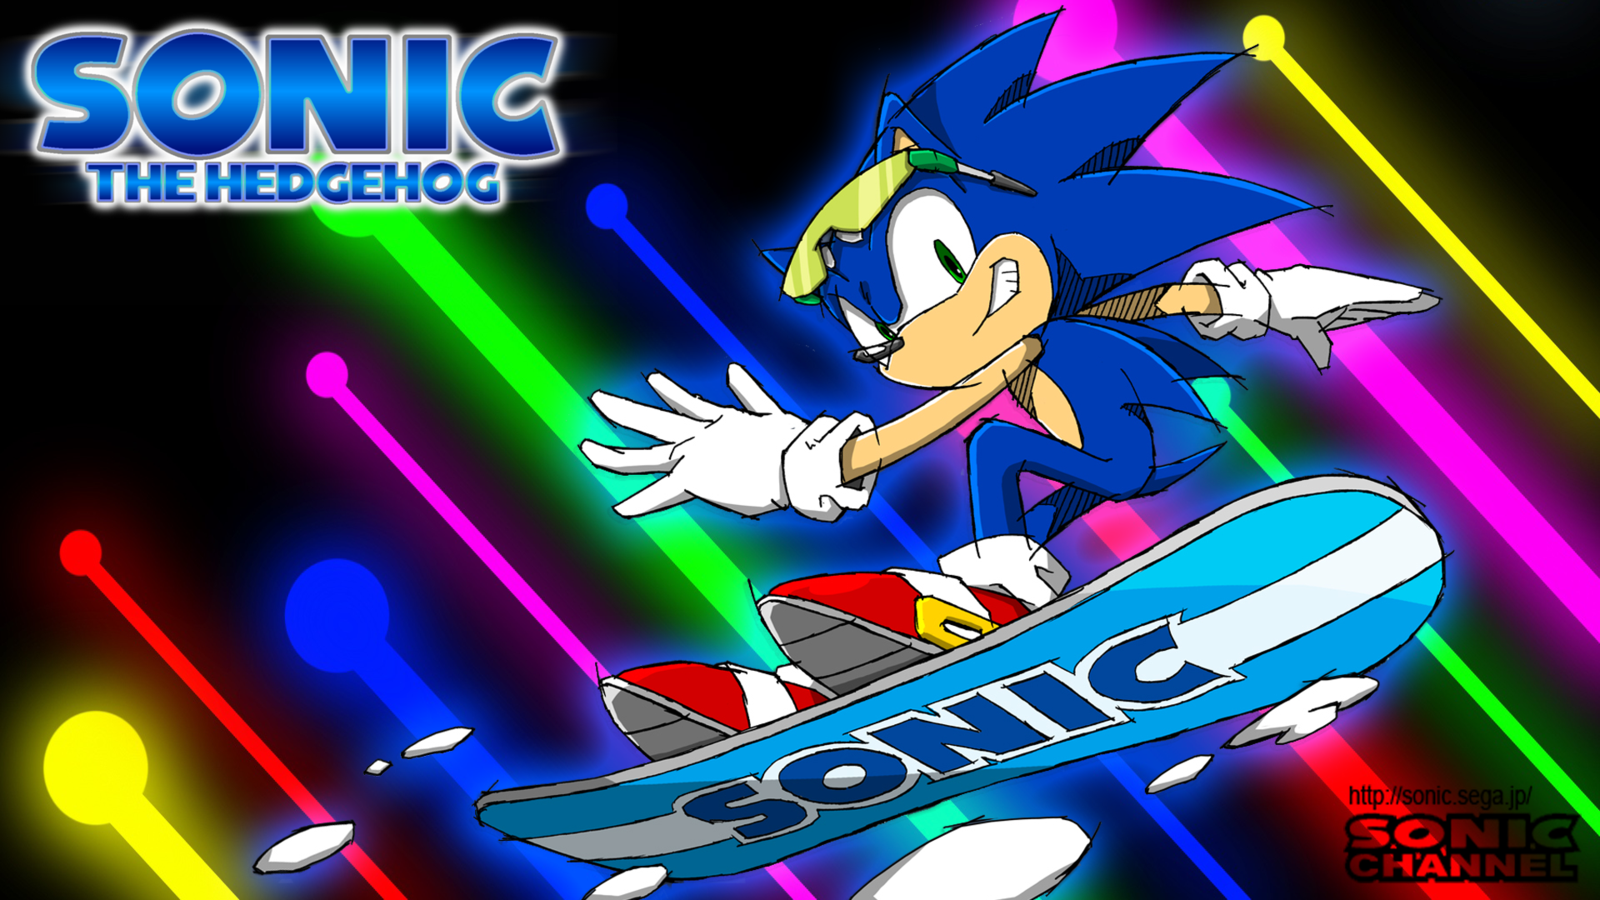 HQ Definition Backgrounds, Sonic The Hedgehog - 1600x900, Jesus Siciliano